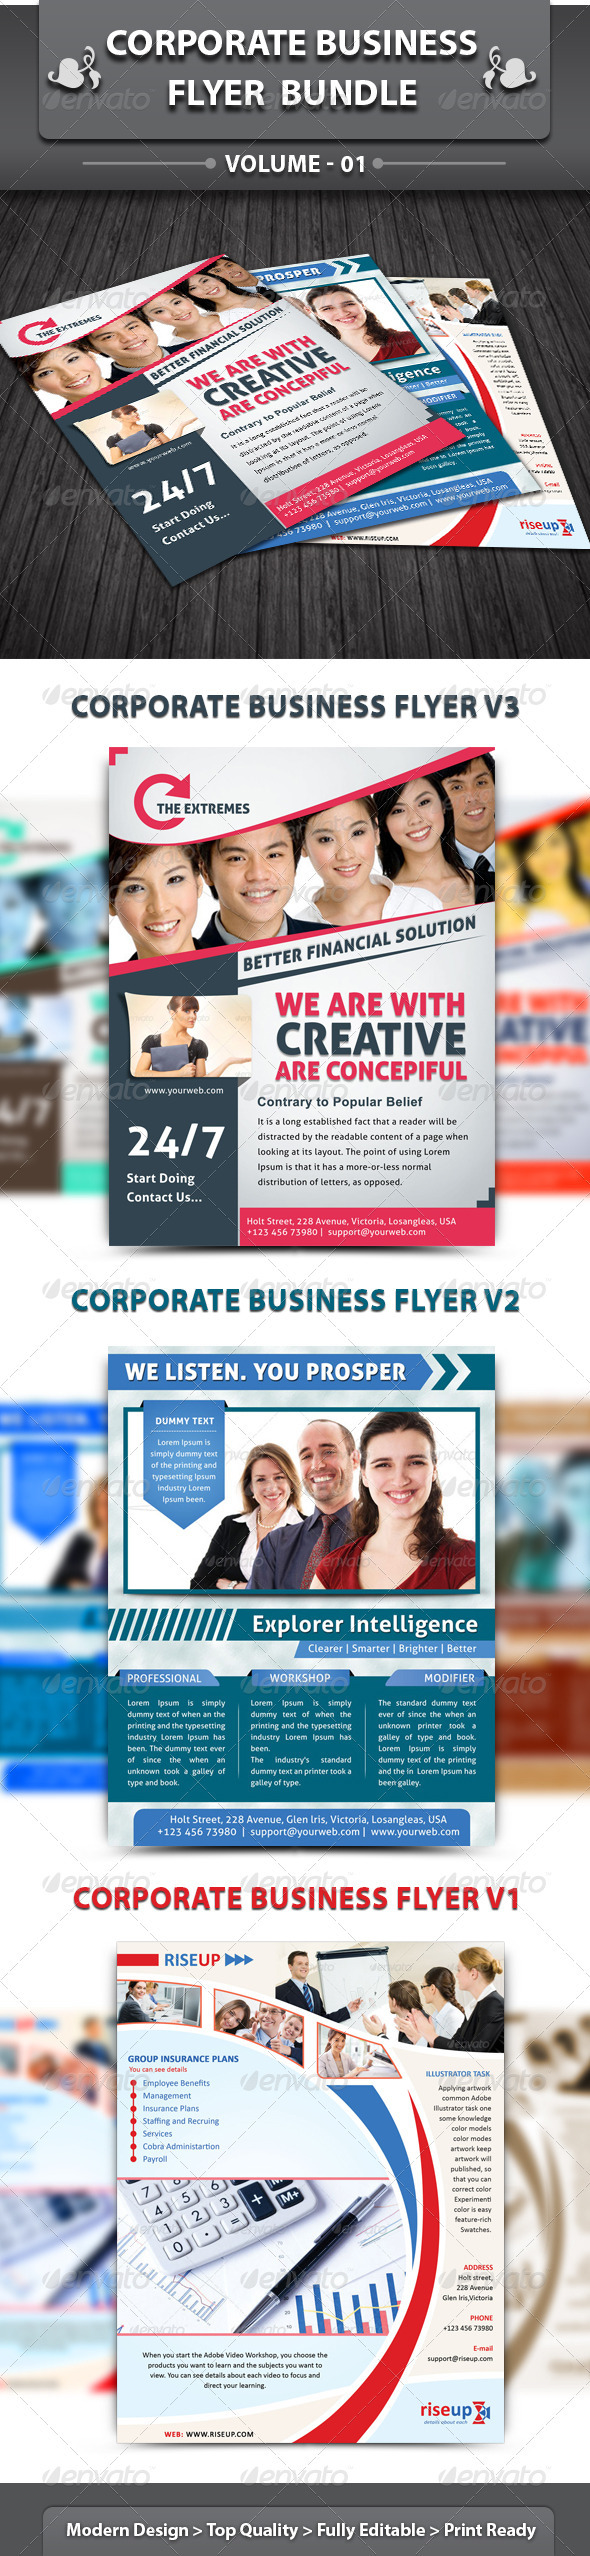 Corporate Business Flyer | Bundle 1 - Corporate Flyers